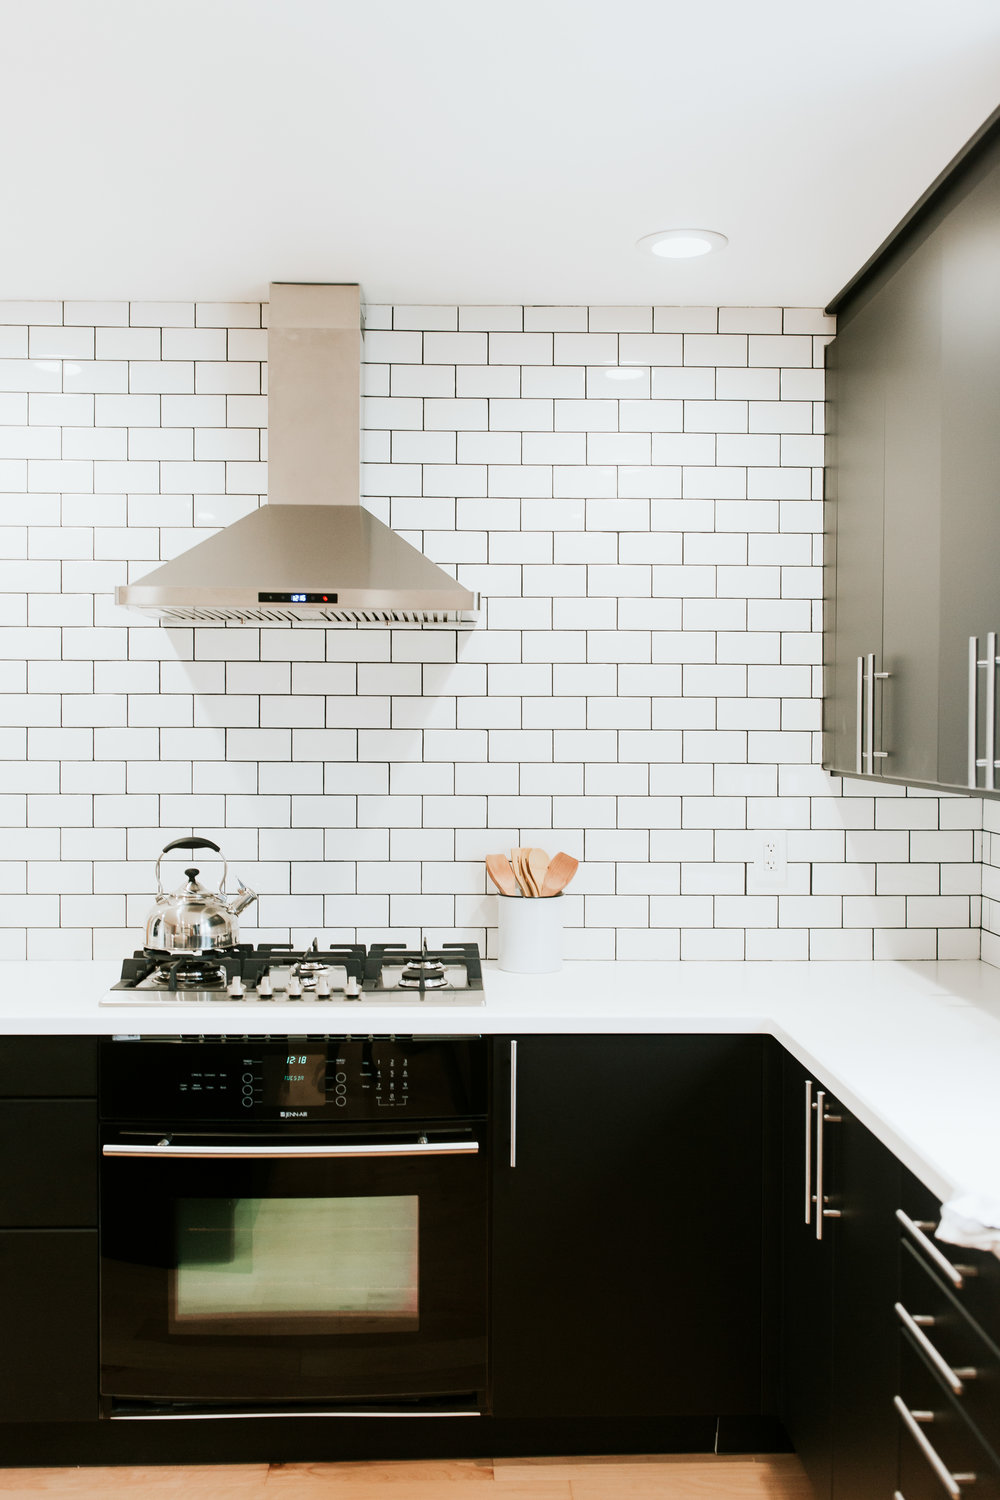 modern kitchen sources - Ikea kungsbacka cabinets, subway tile, modern light wood floors, stainless steel appliances